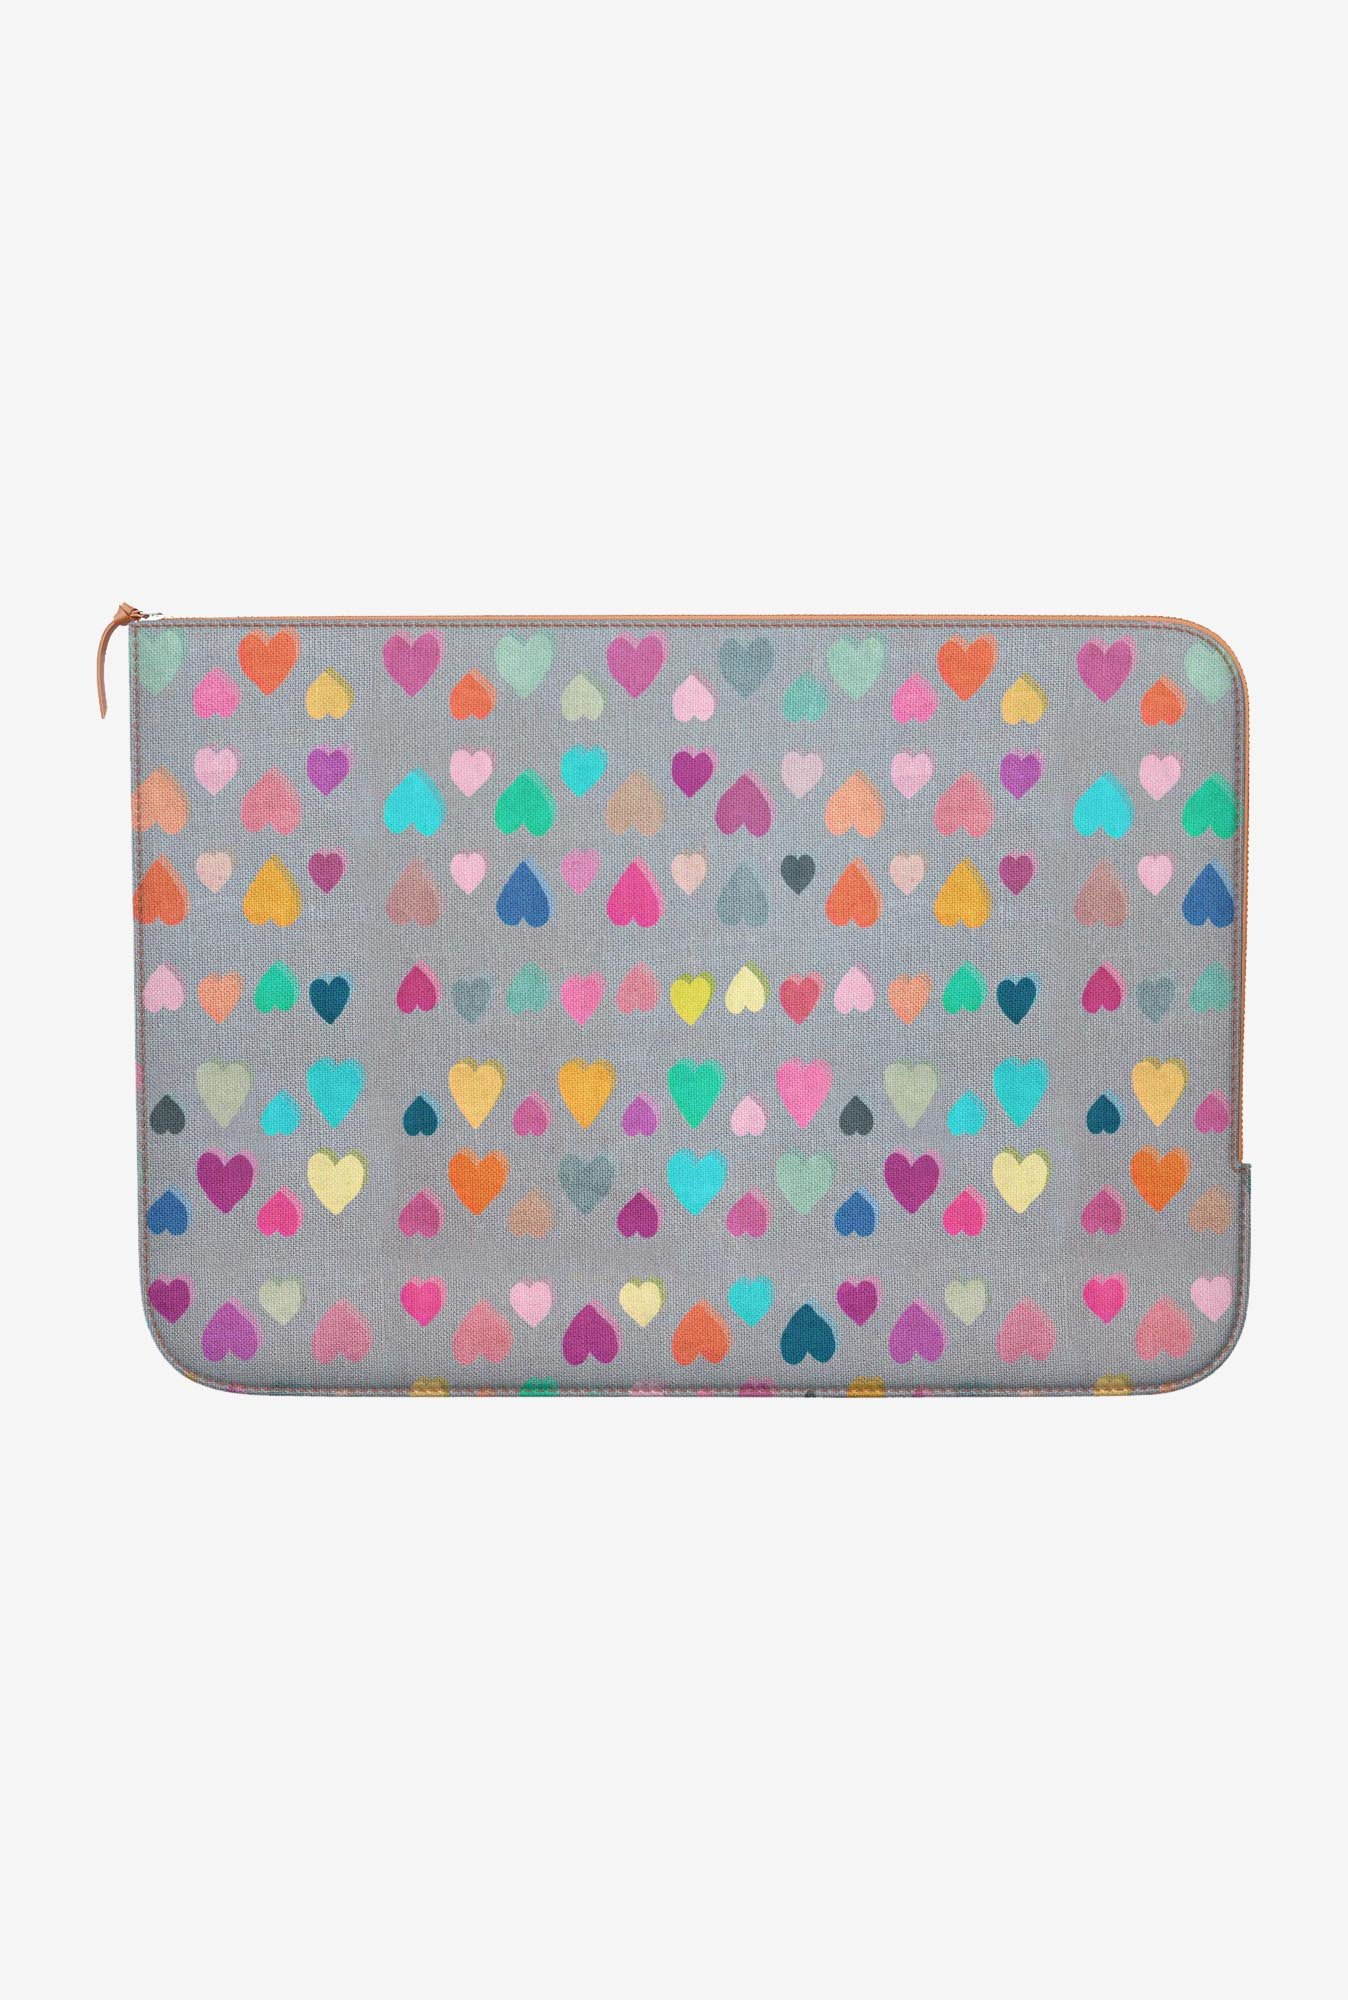 DailyObjects Happy Hearts MacBook Pro 15 Zippered Sleeve